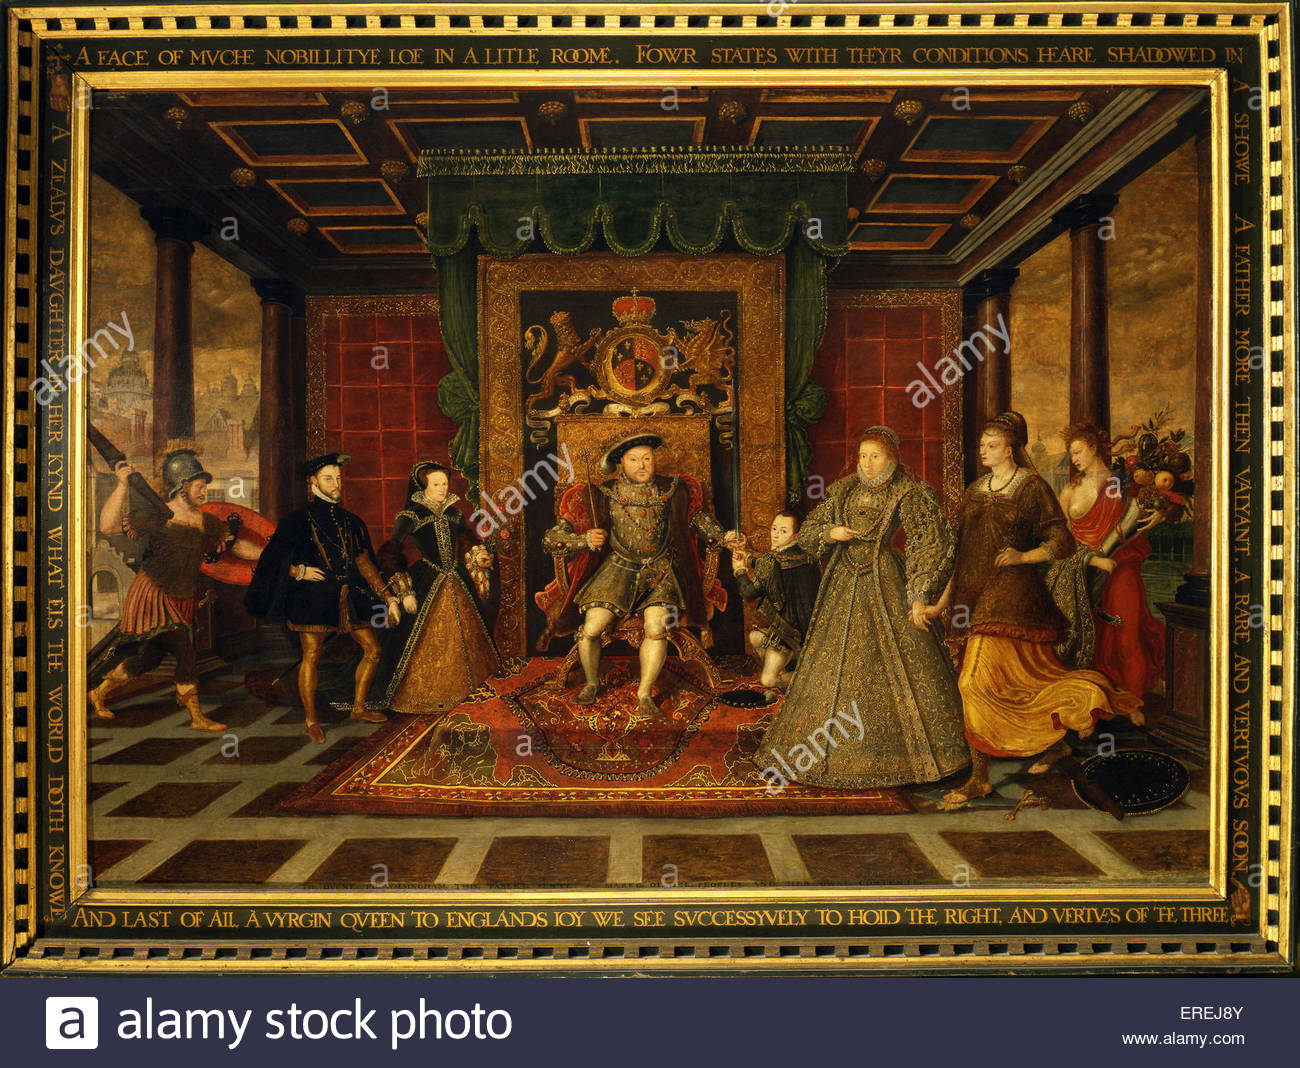 'The Family of Henry VIII, an allegory of the Tudor Succession'   by Lucas de Heere c.1572. Flemish painter - Stock Image